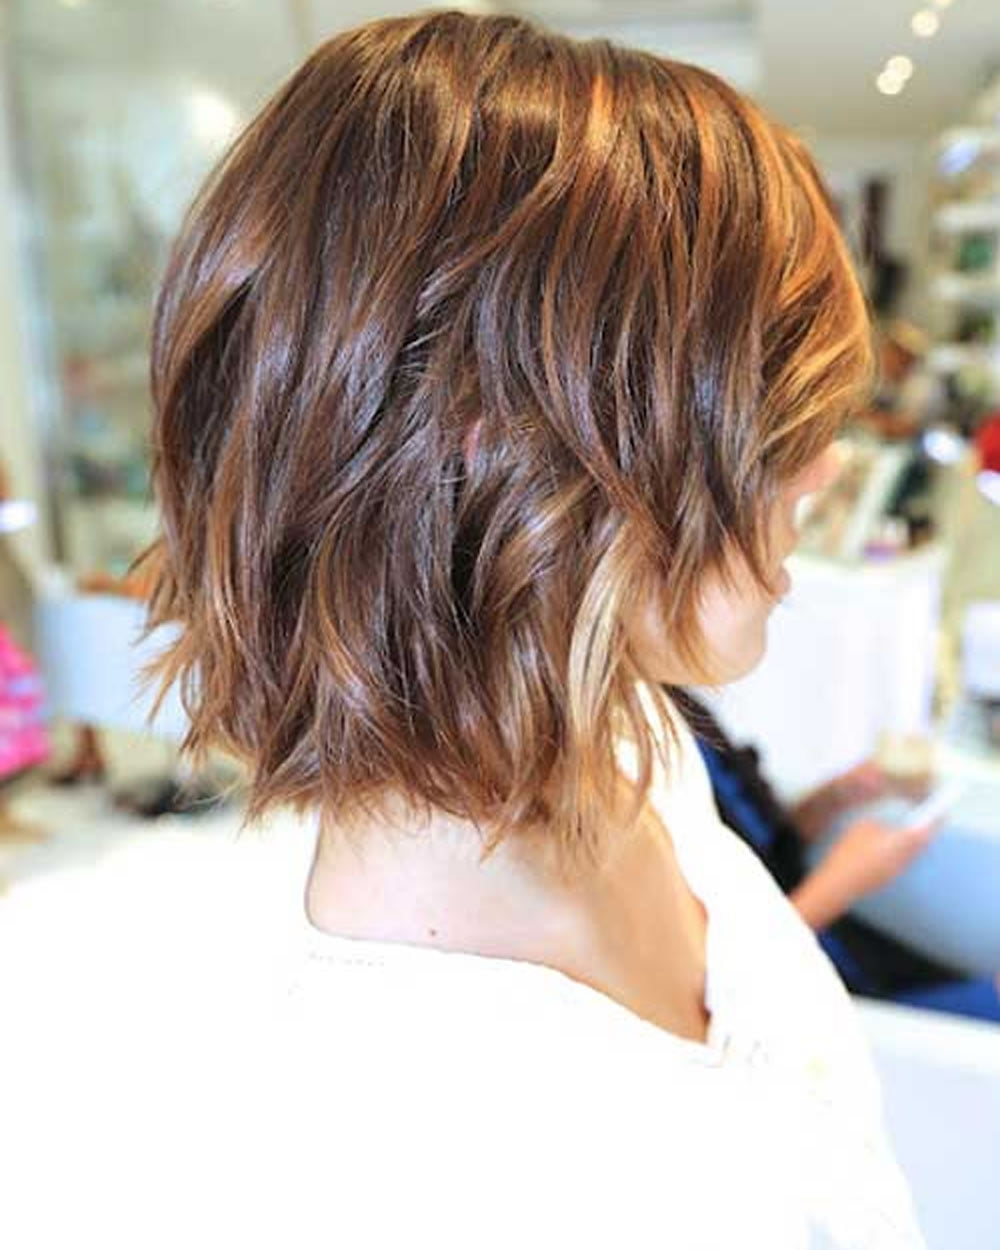 Ombre Colored Short Hairstyles for Summer 2018-2019